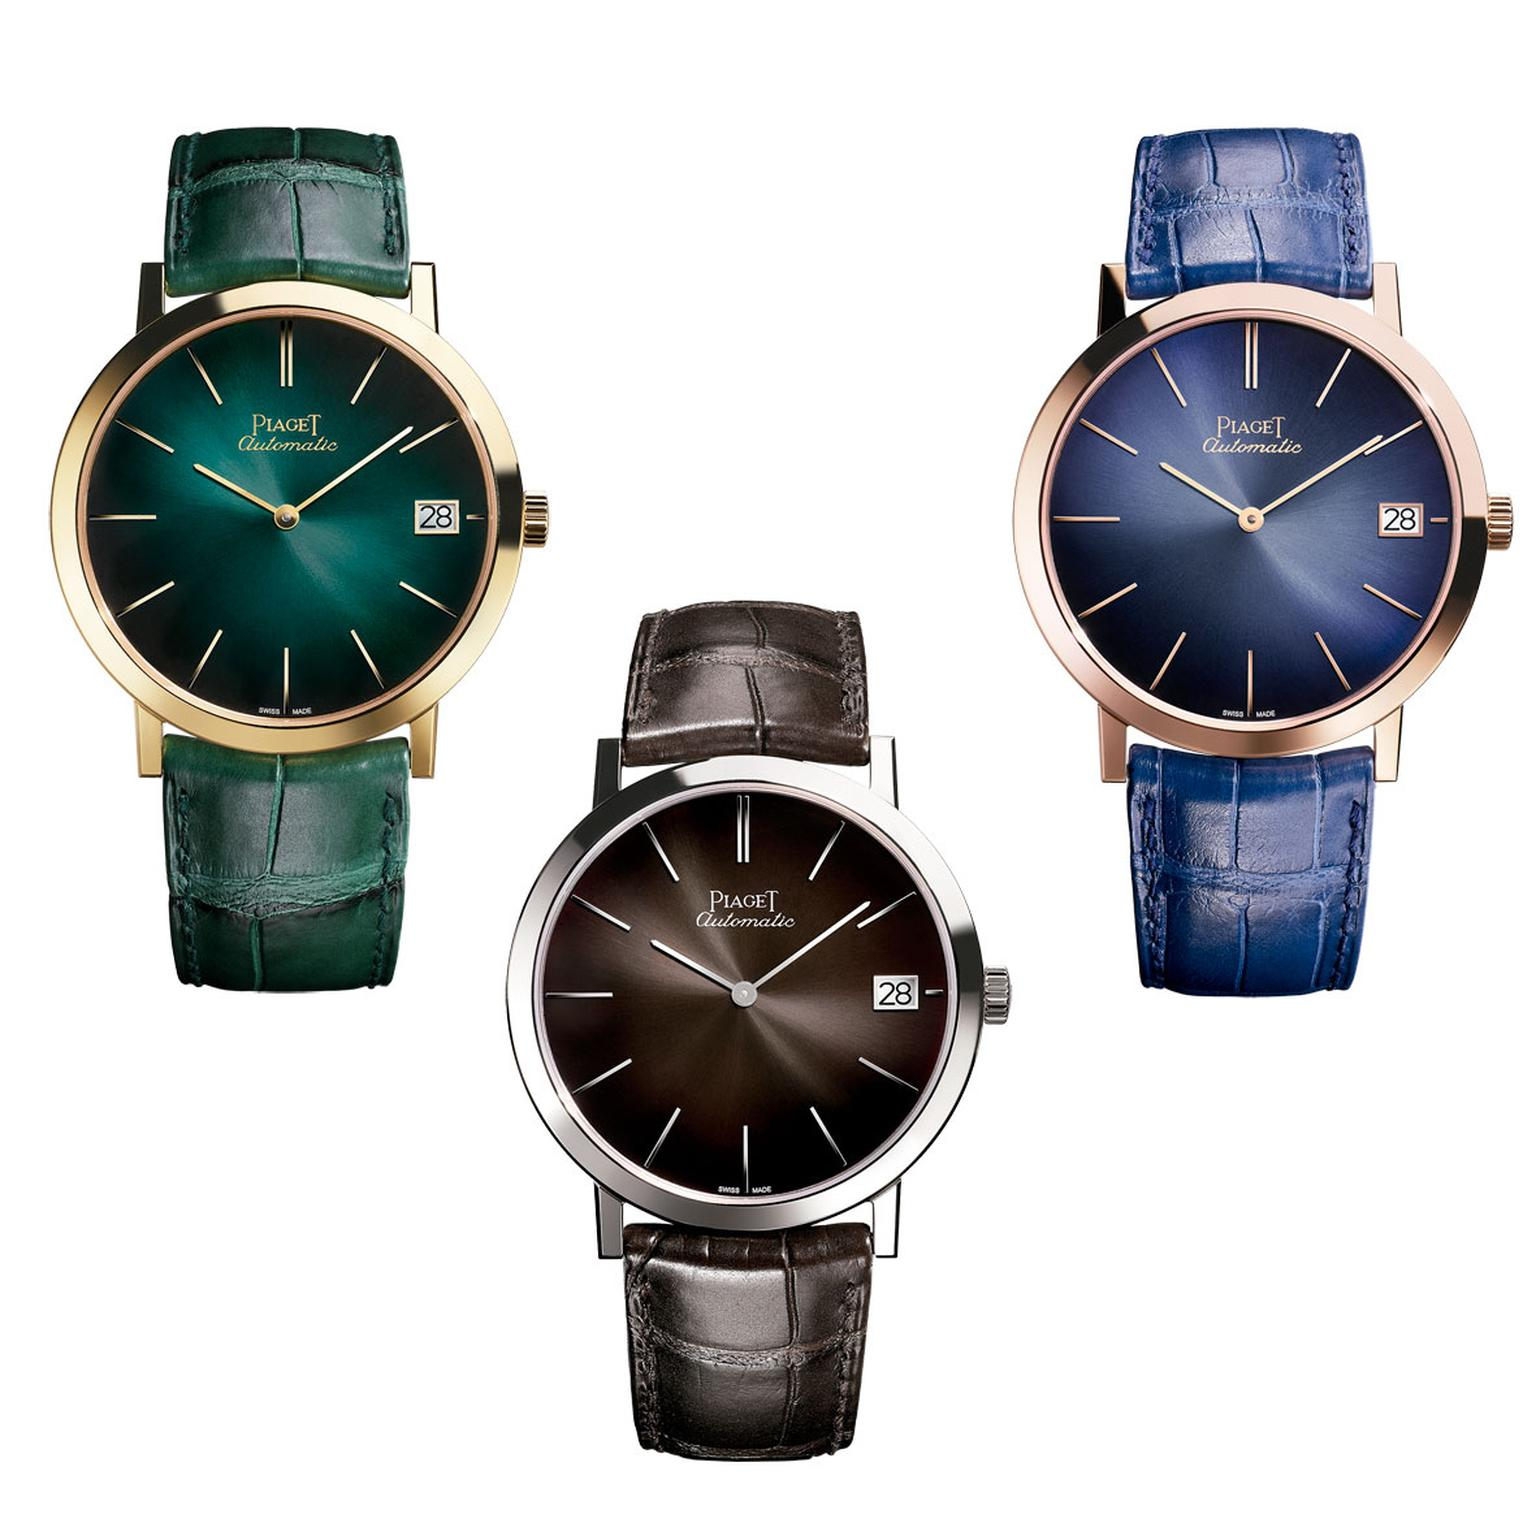 40mm Piaget Altiplano watches in green, grey and blue